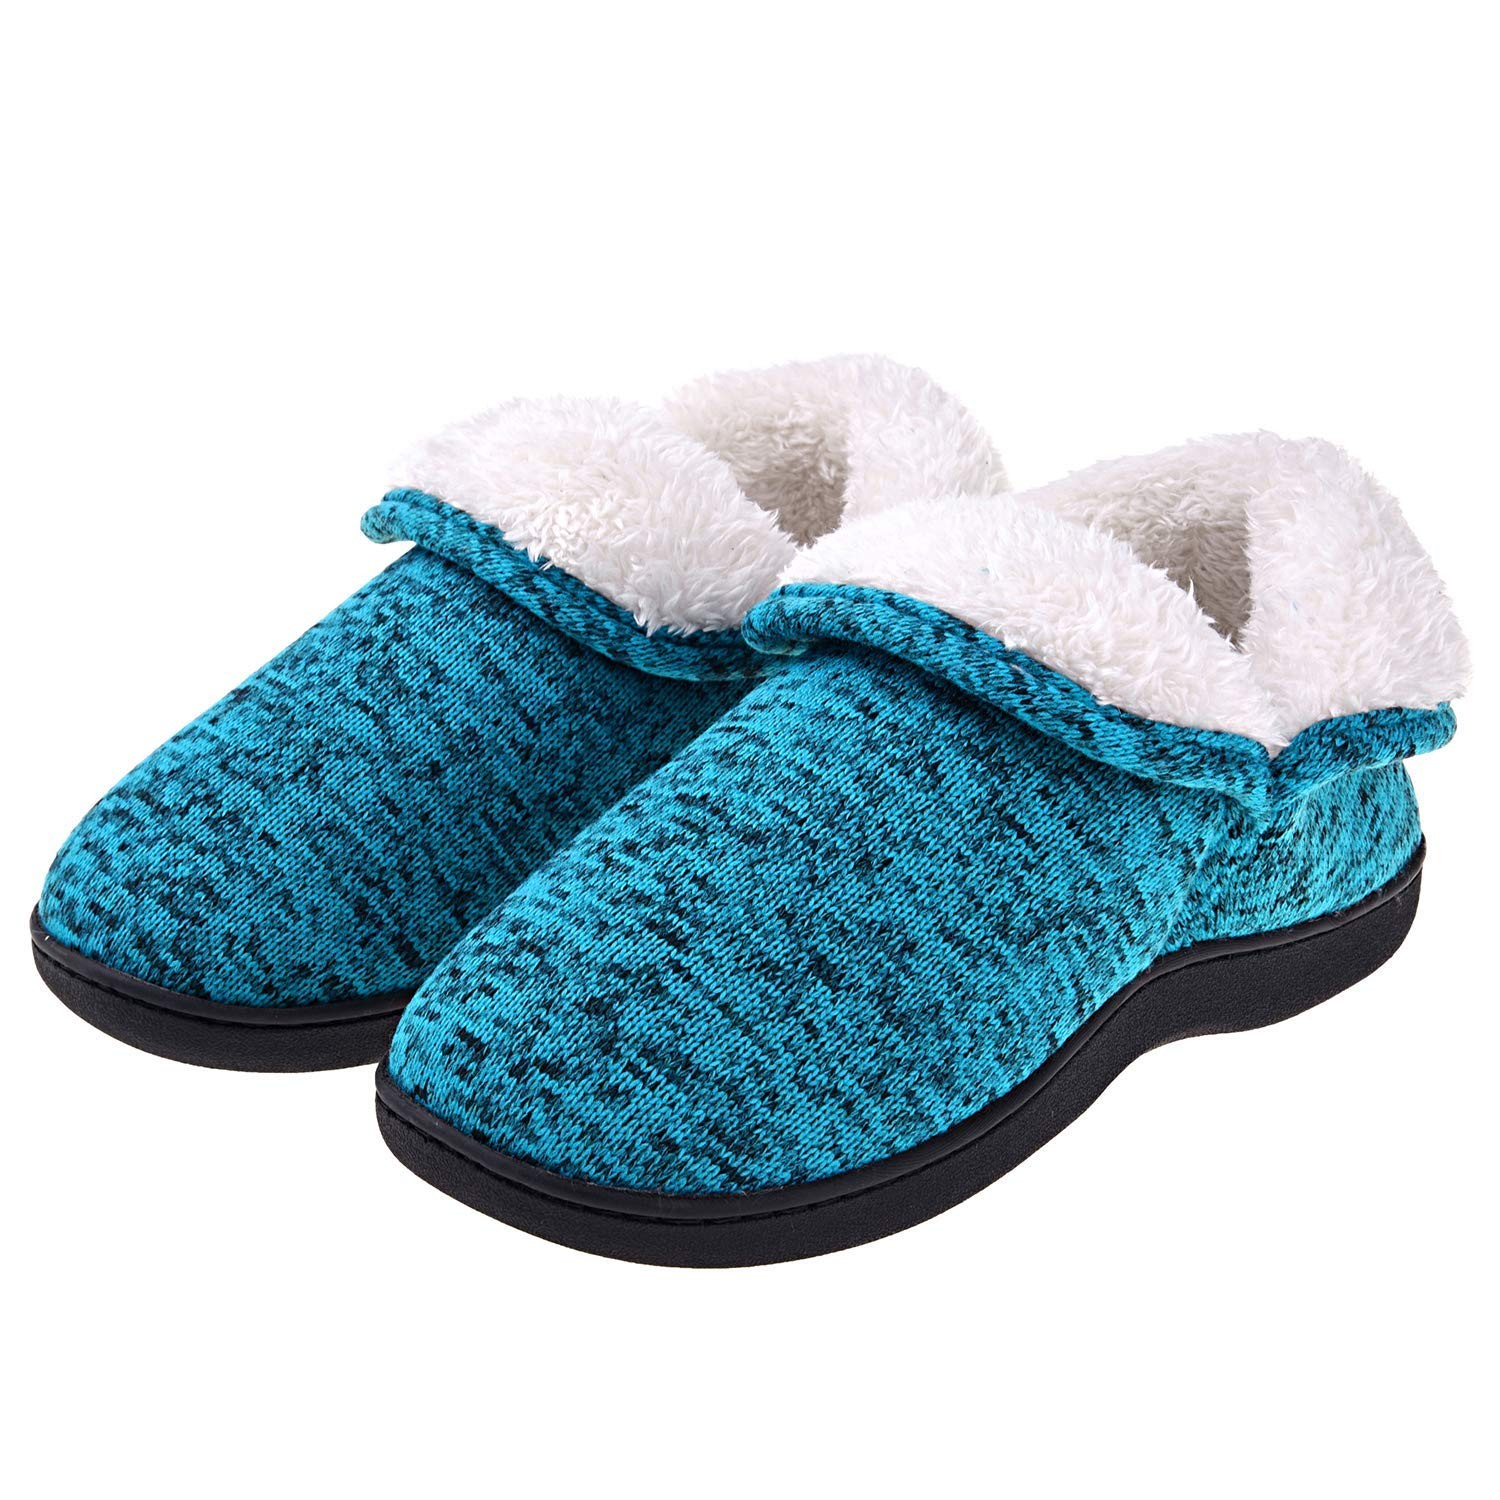 All agree Cute Cat with The Camera Mens House Indoor Outdoor Bedroom Slippers Adjustable Sandals